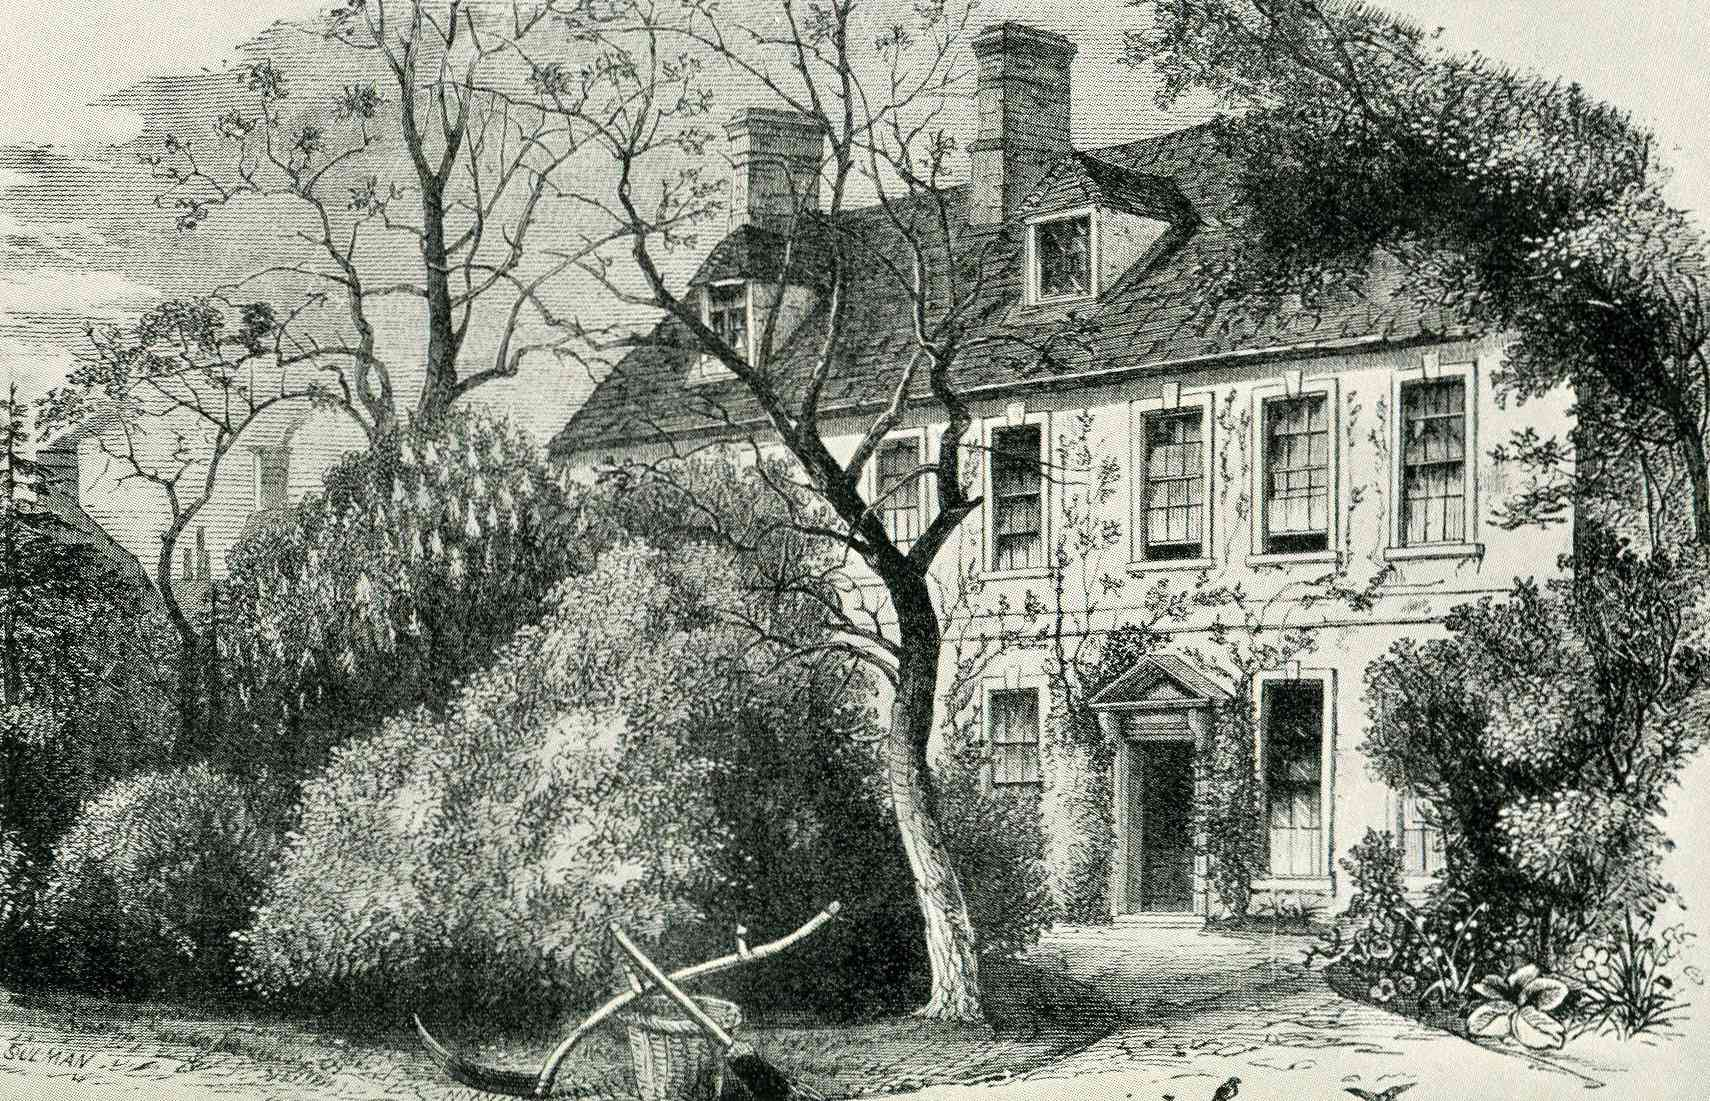 The vicarage in Olney, Buckinghamshire